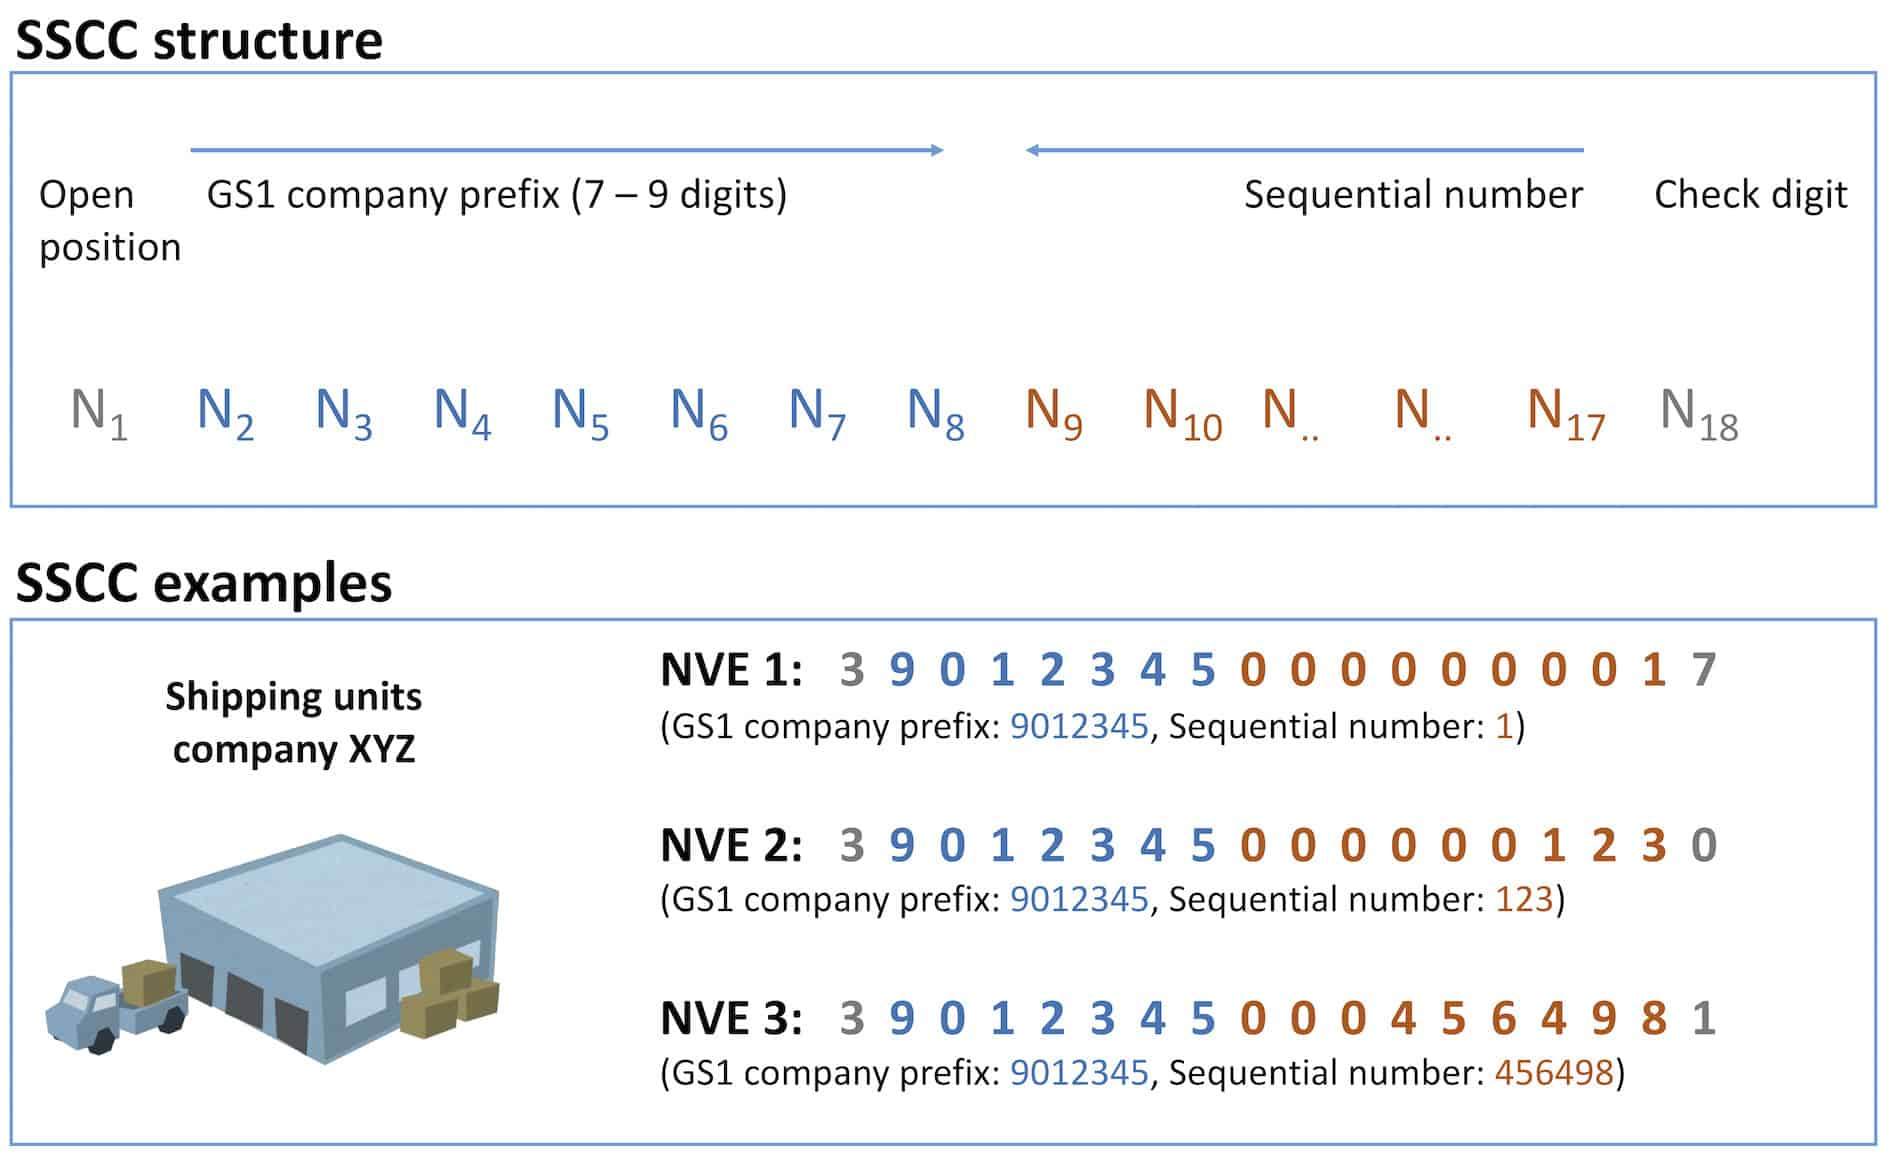 Structure of SSCC numbers